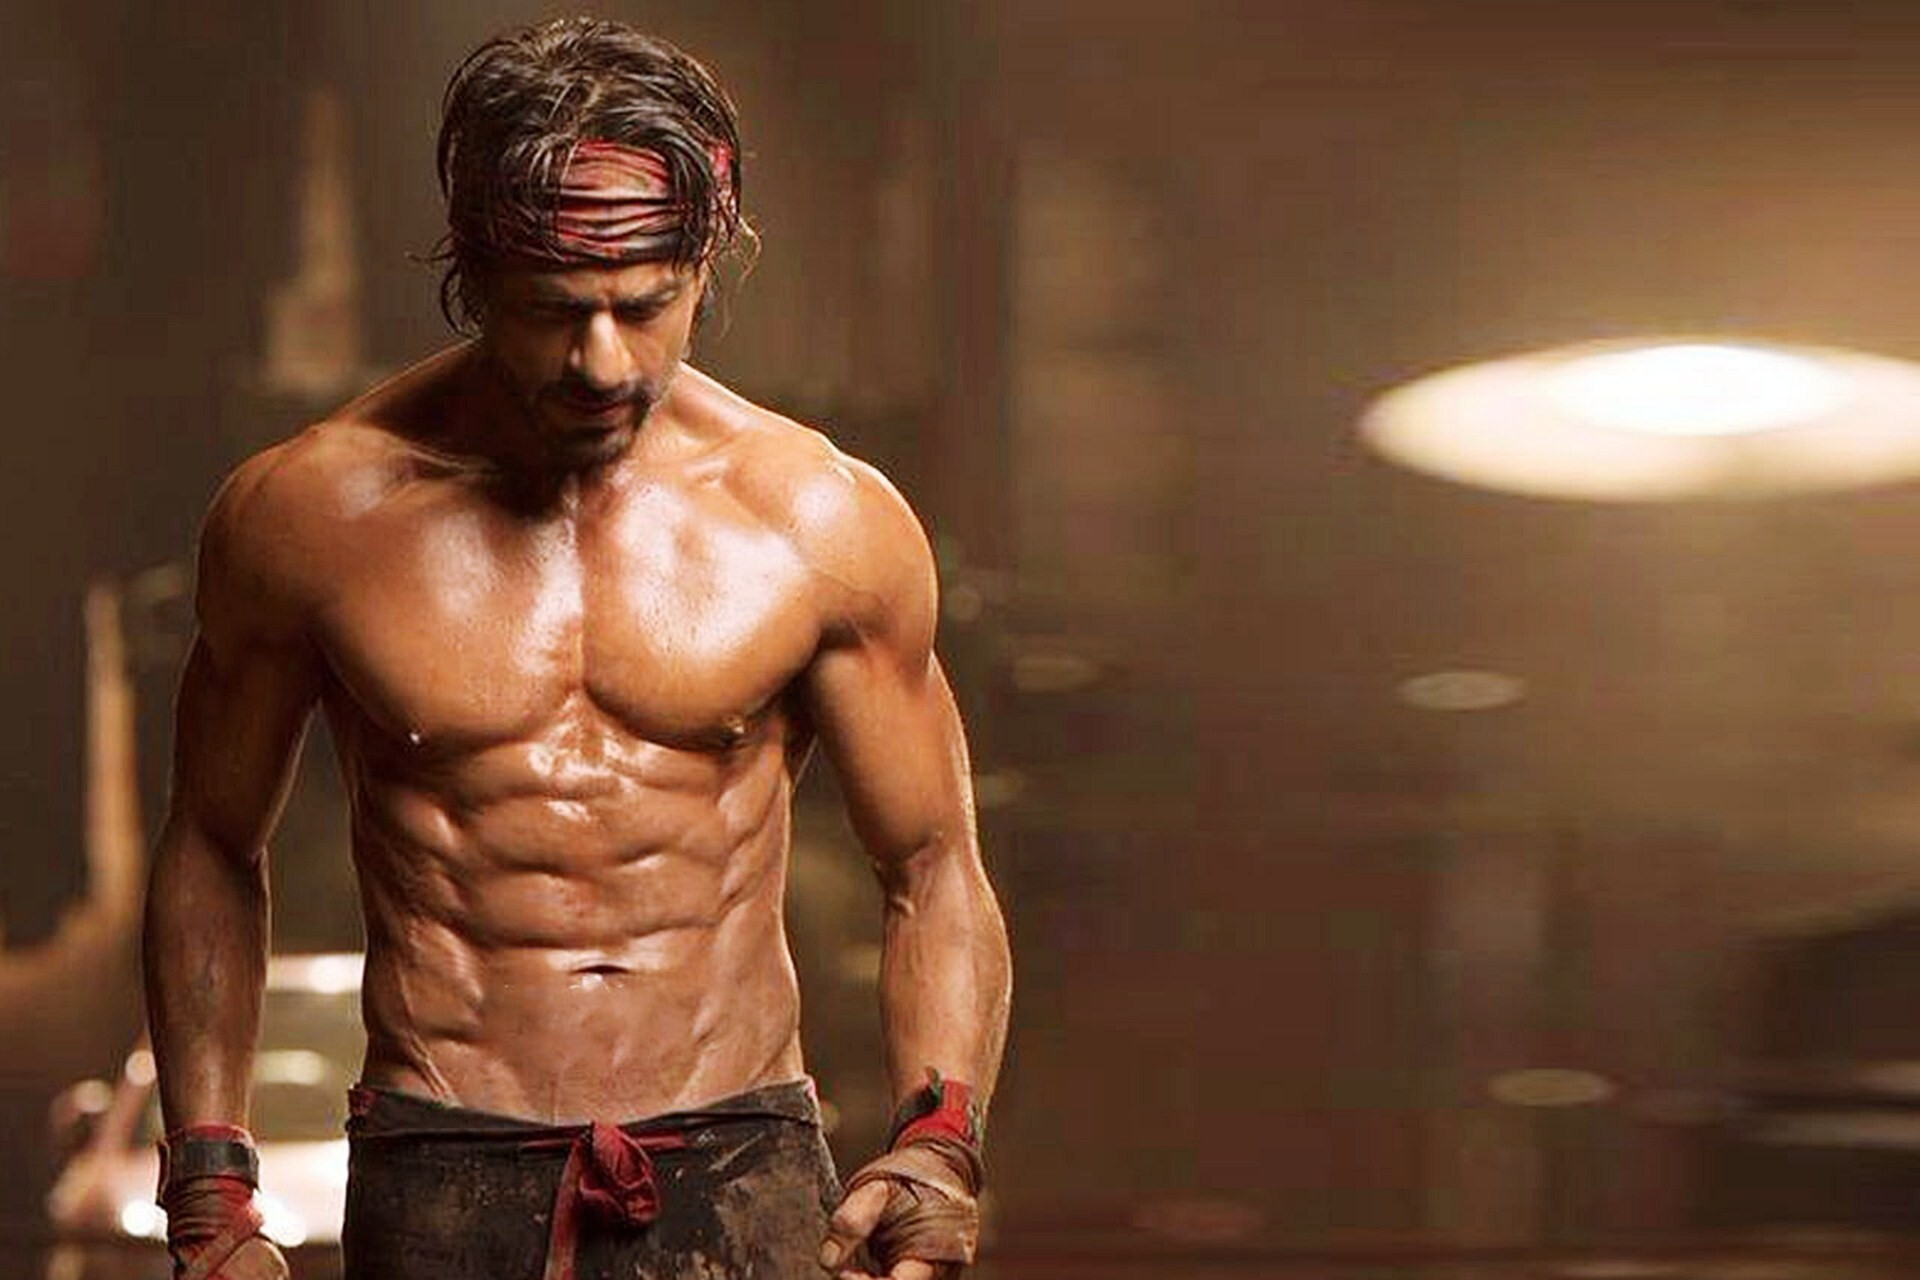 Famous Actor Shahrukh Khan 6 Pack Body in Happy New Year ...